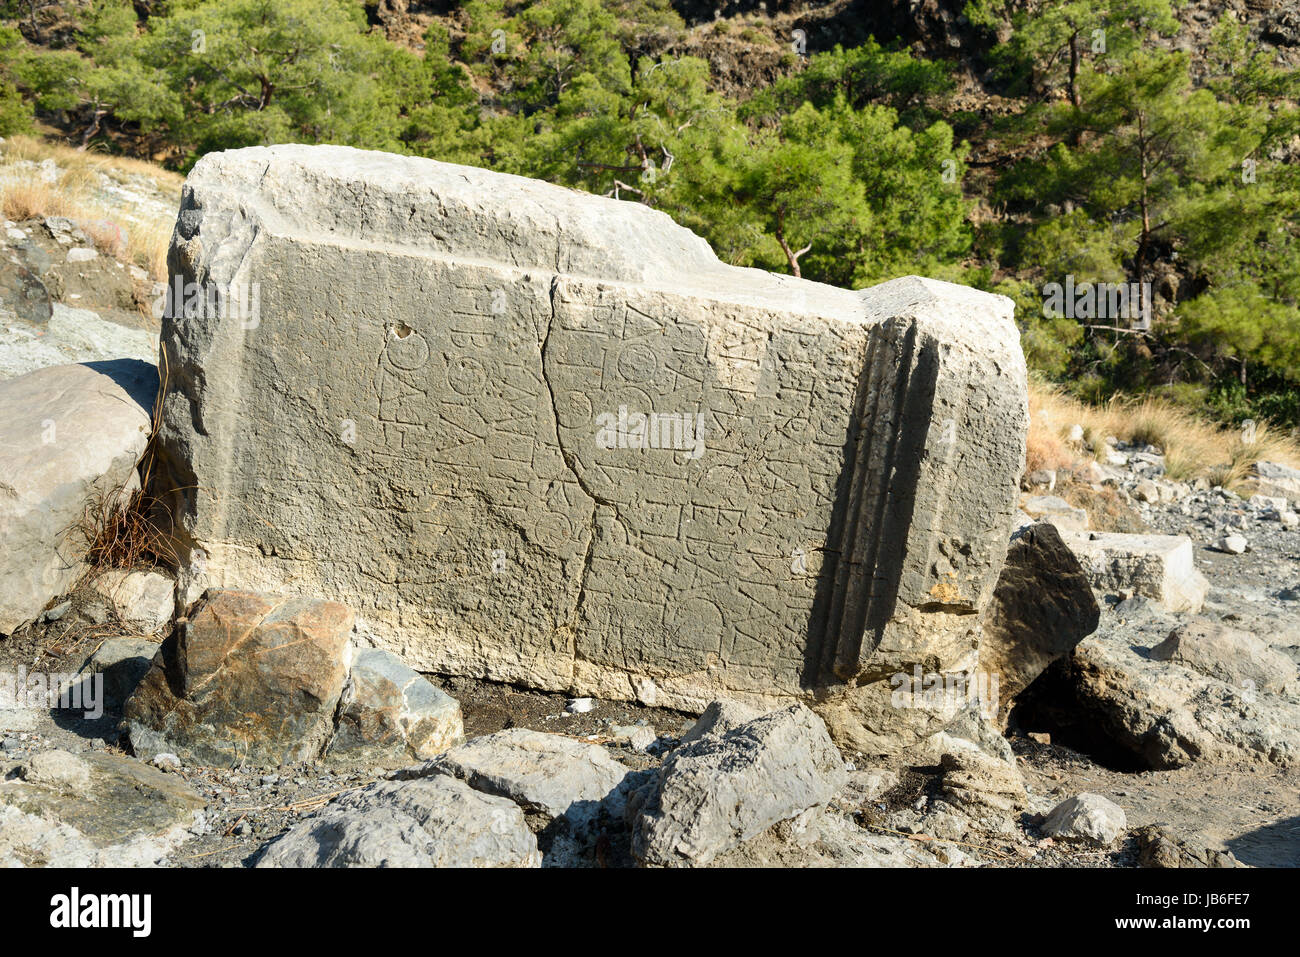 Stone with ancient Greek script. Ruins of temple of Hephaestus on Chimaera Mount. Turkey - Stock Image